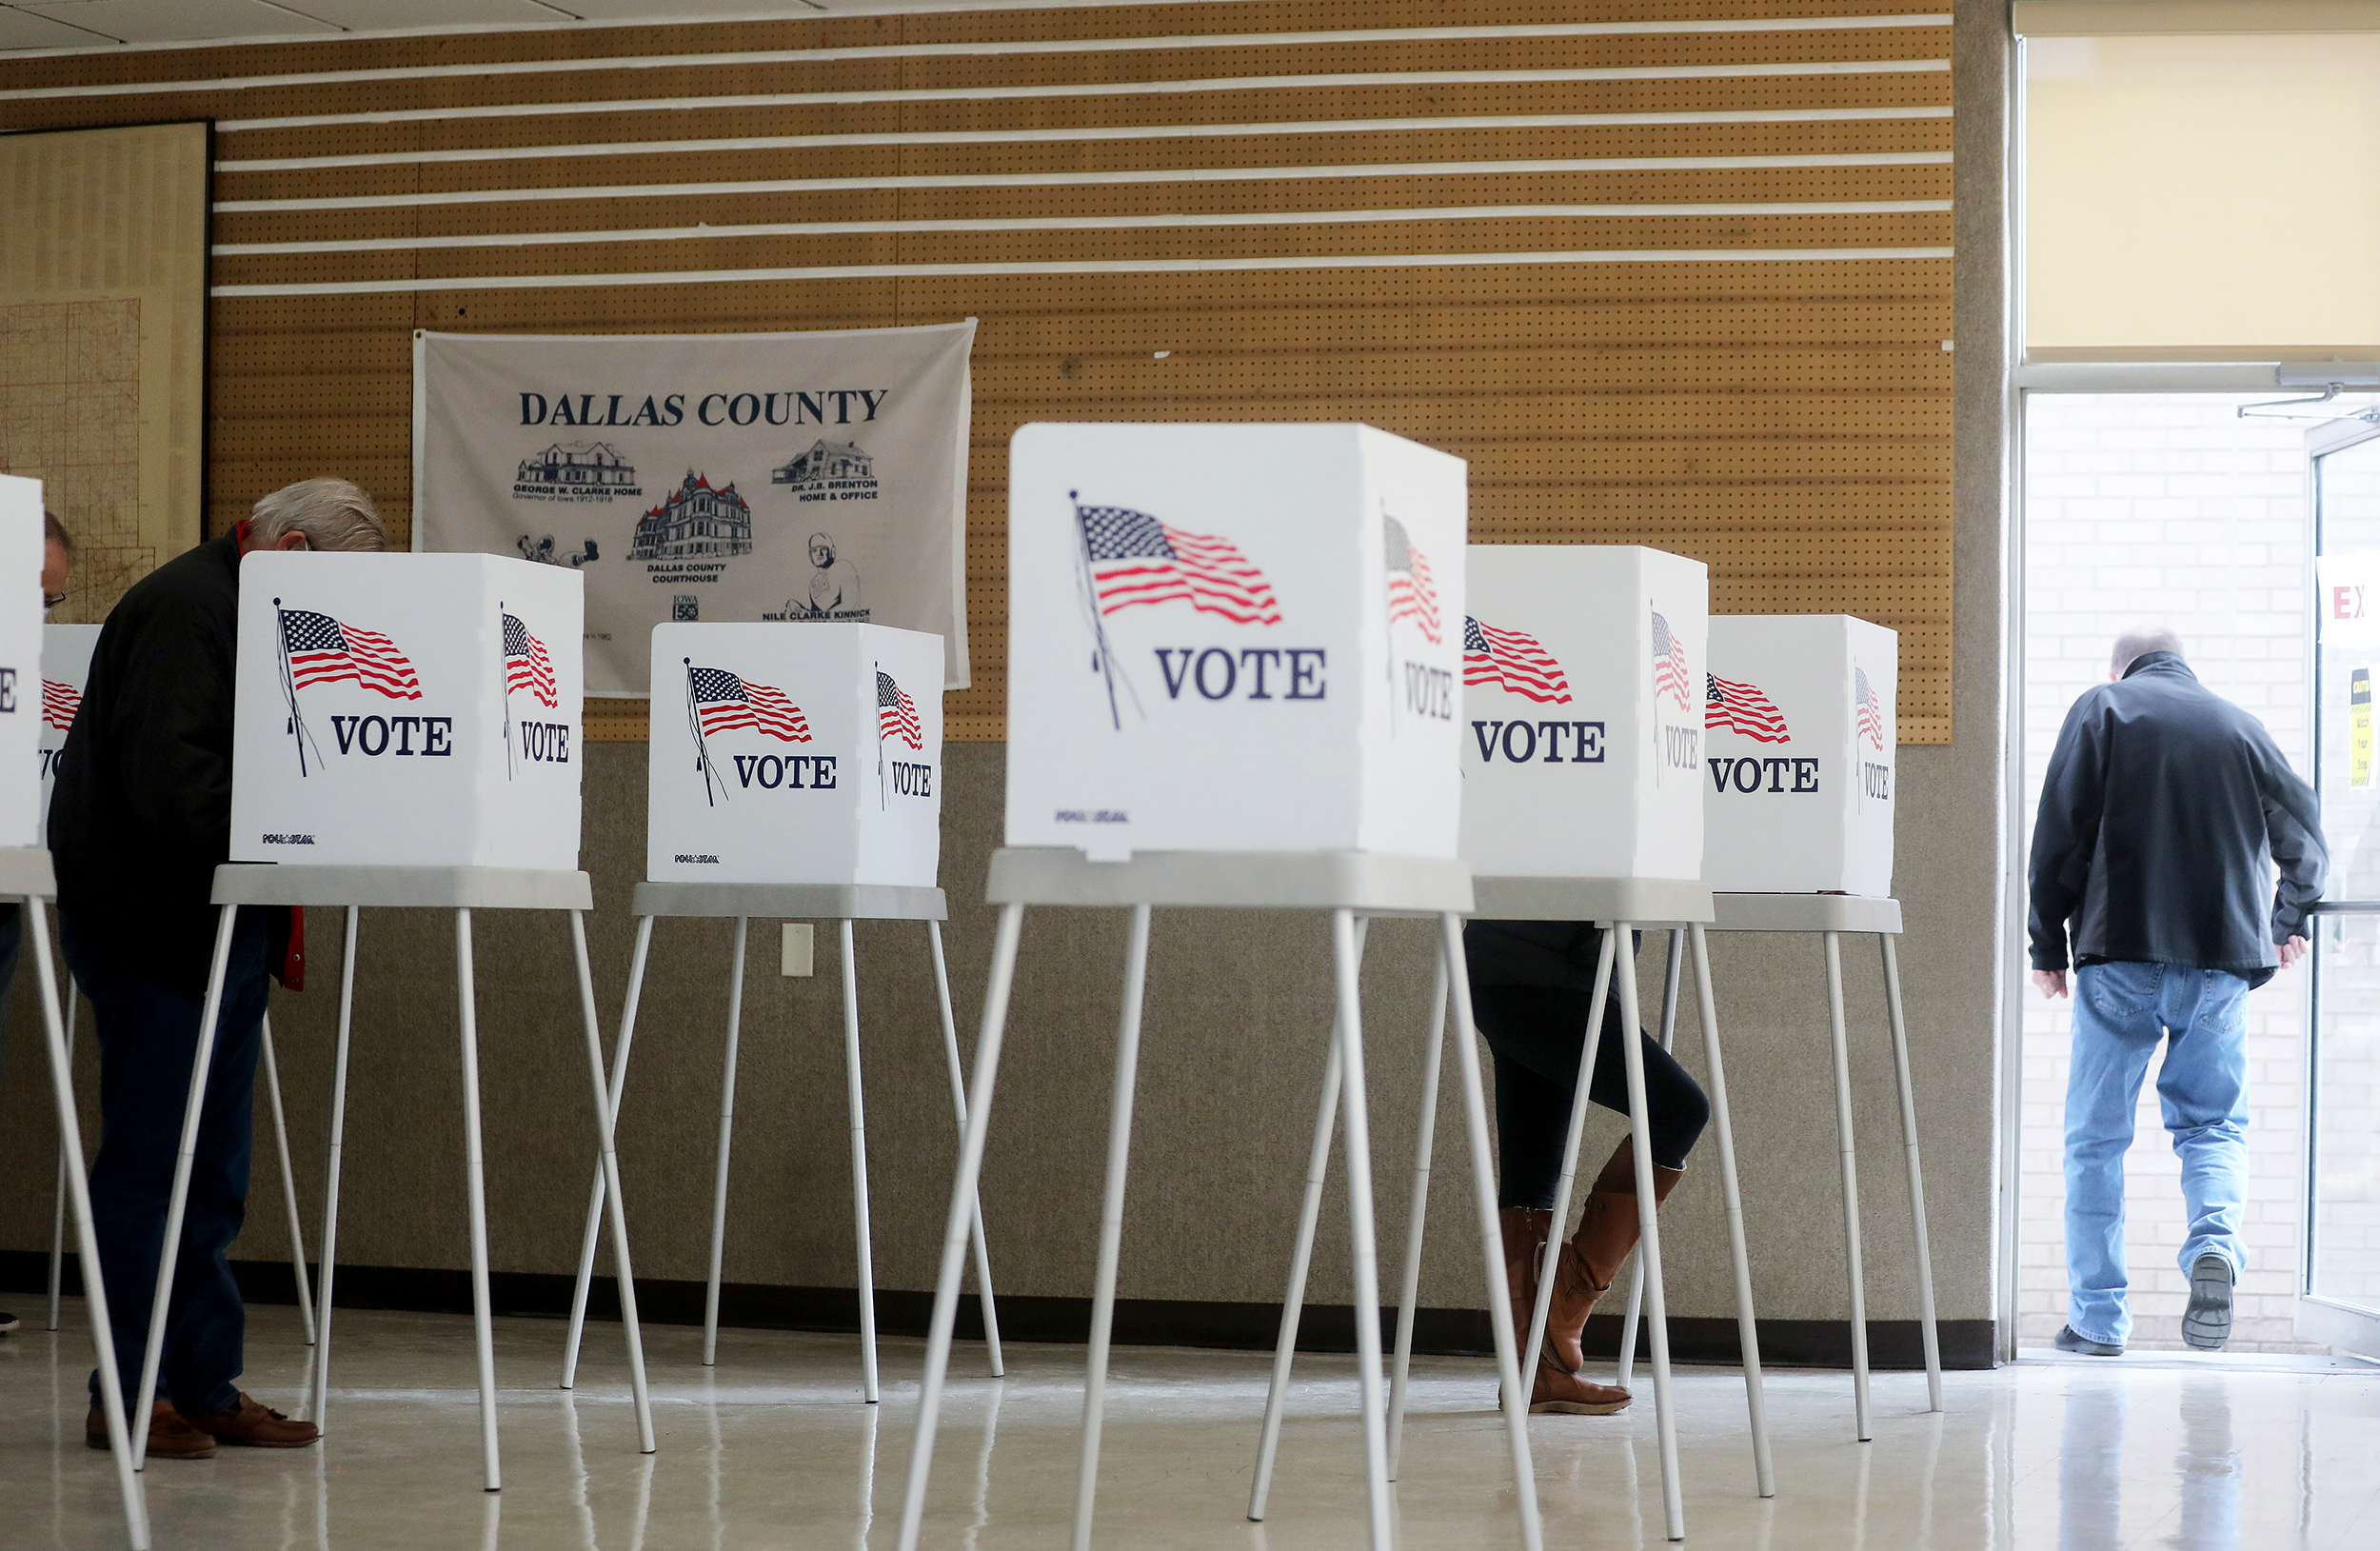 We made it to the Friday before Election Day. Here's what to know